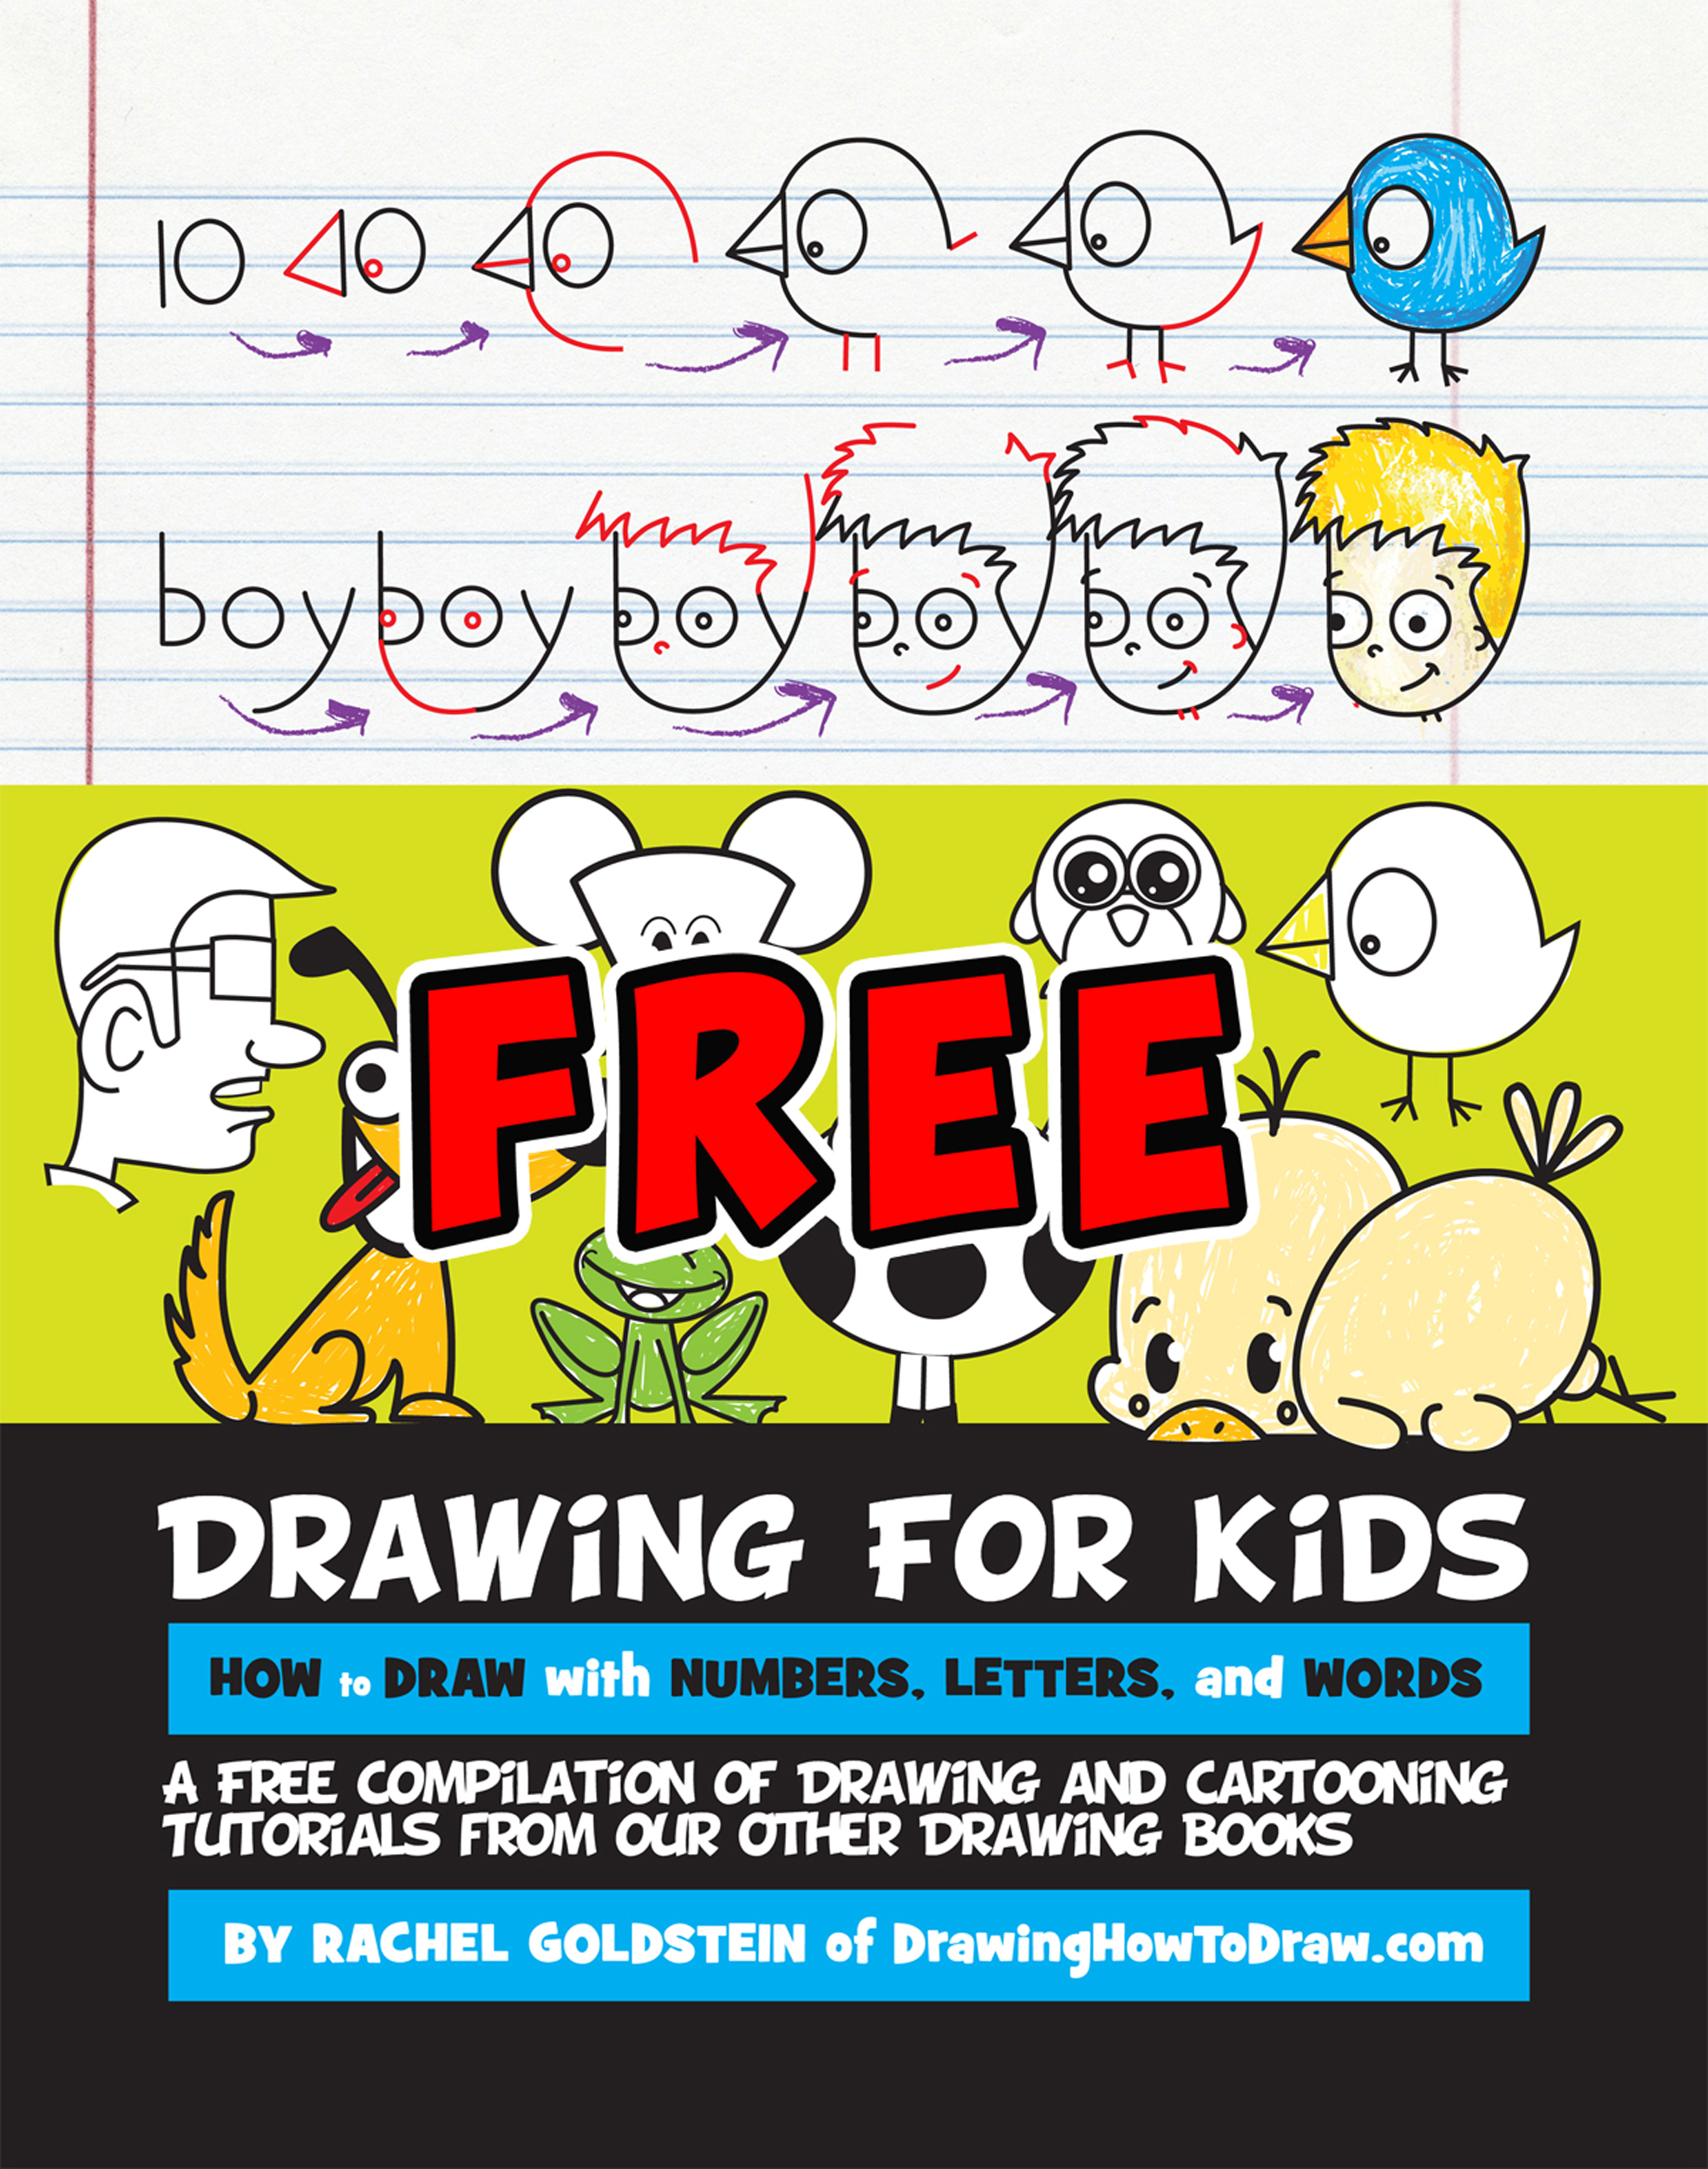 drawing for kids how to draw cartoons with letters numbers and words - Kids Free Drawing